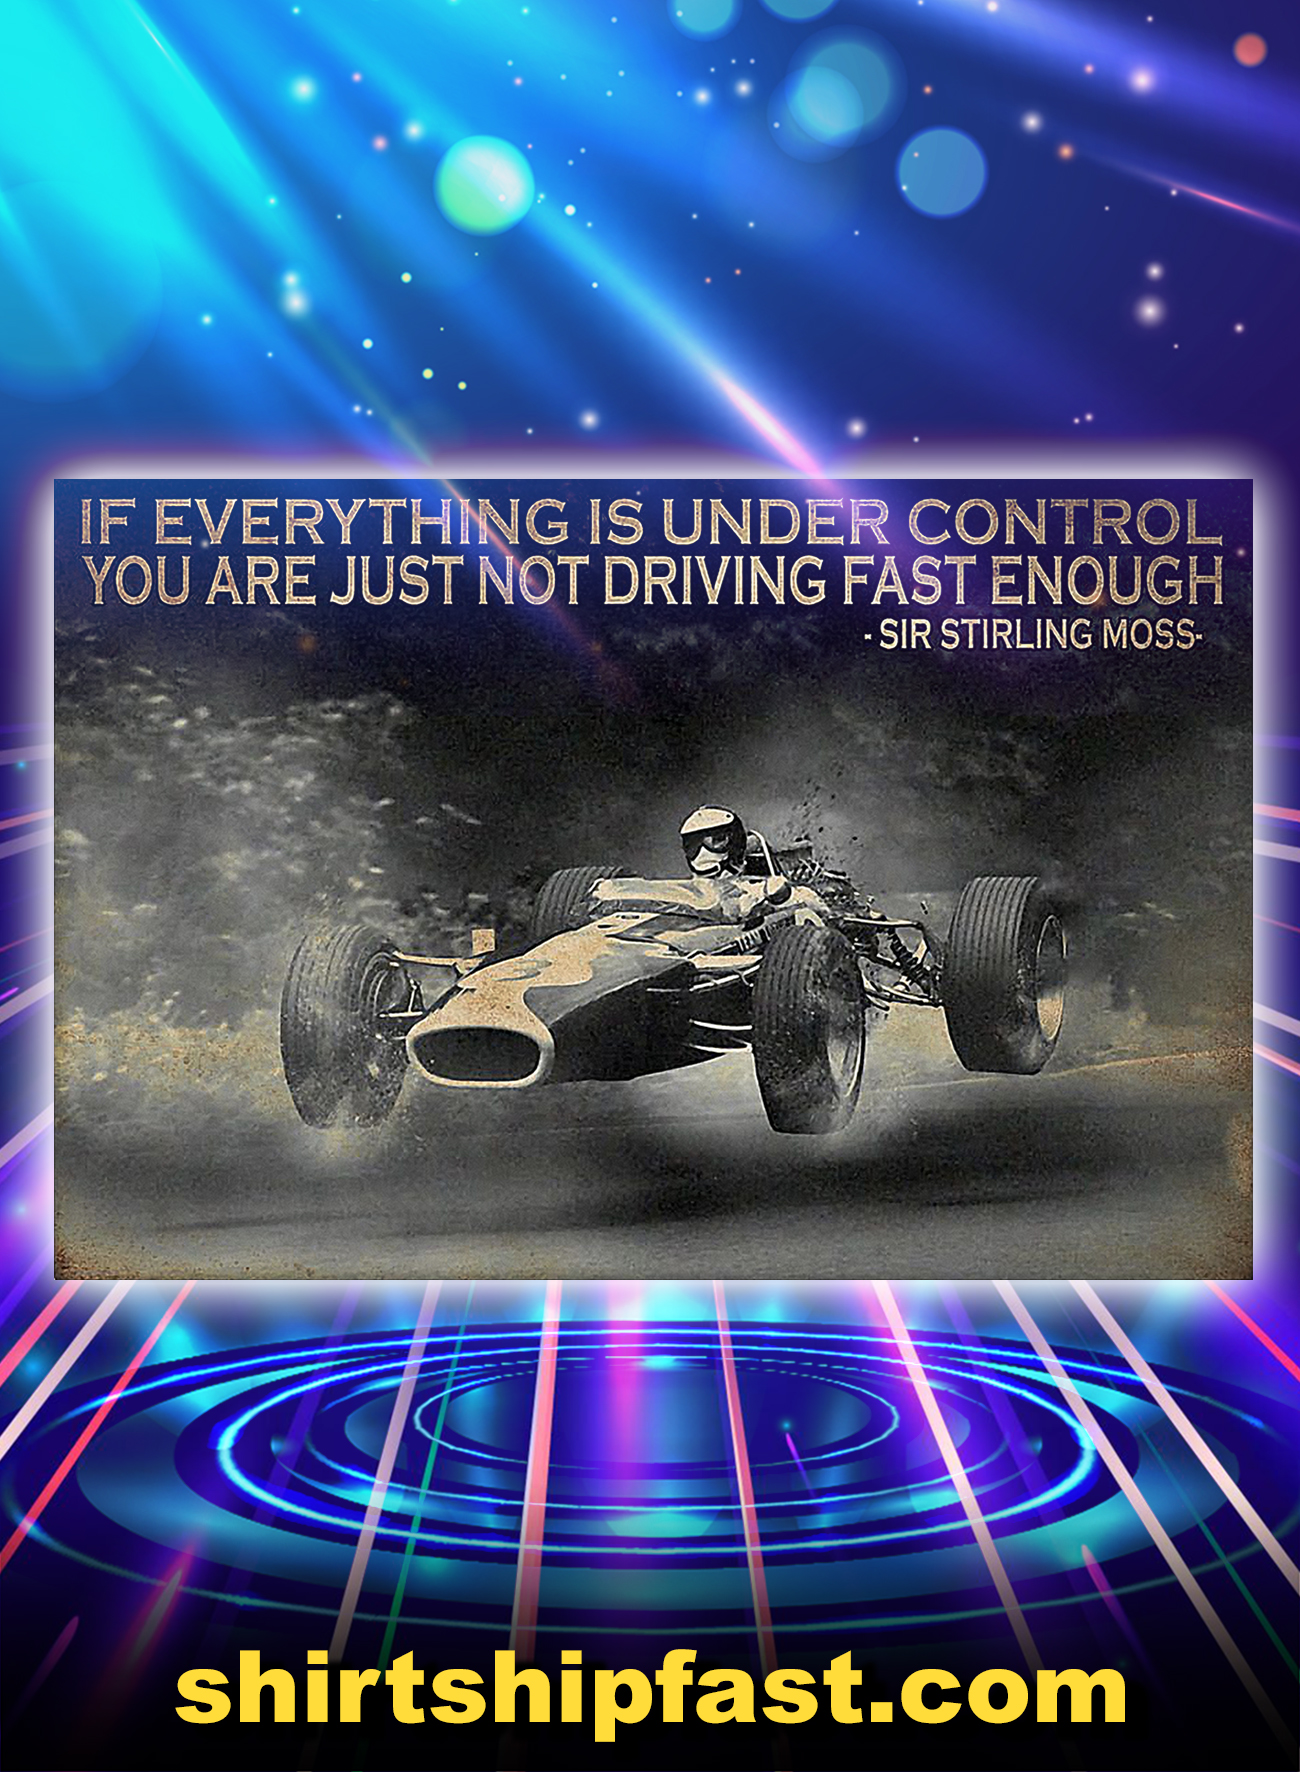 Motorsport racing if everything is under control poster - A4